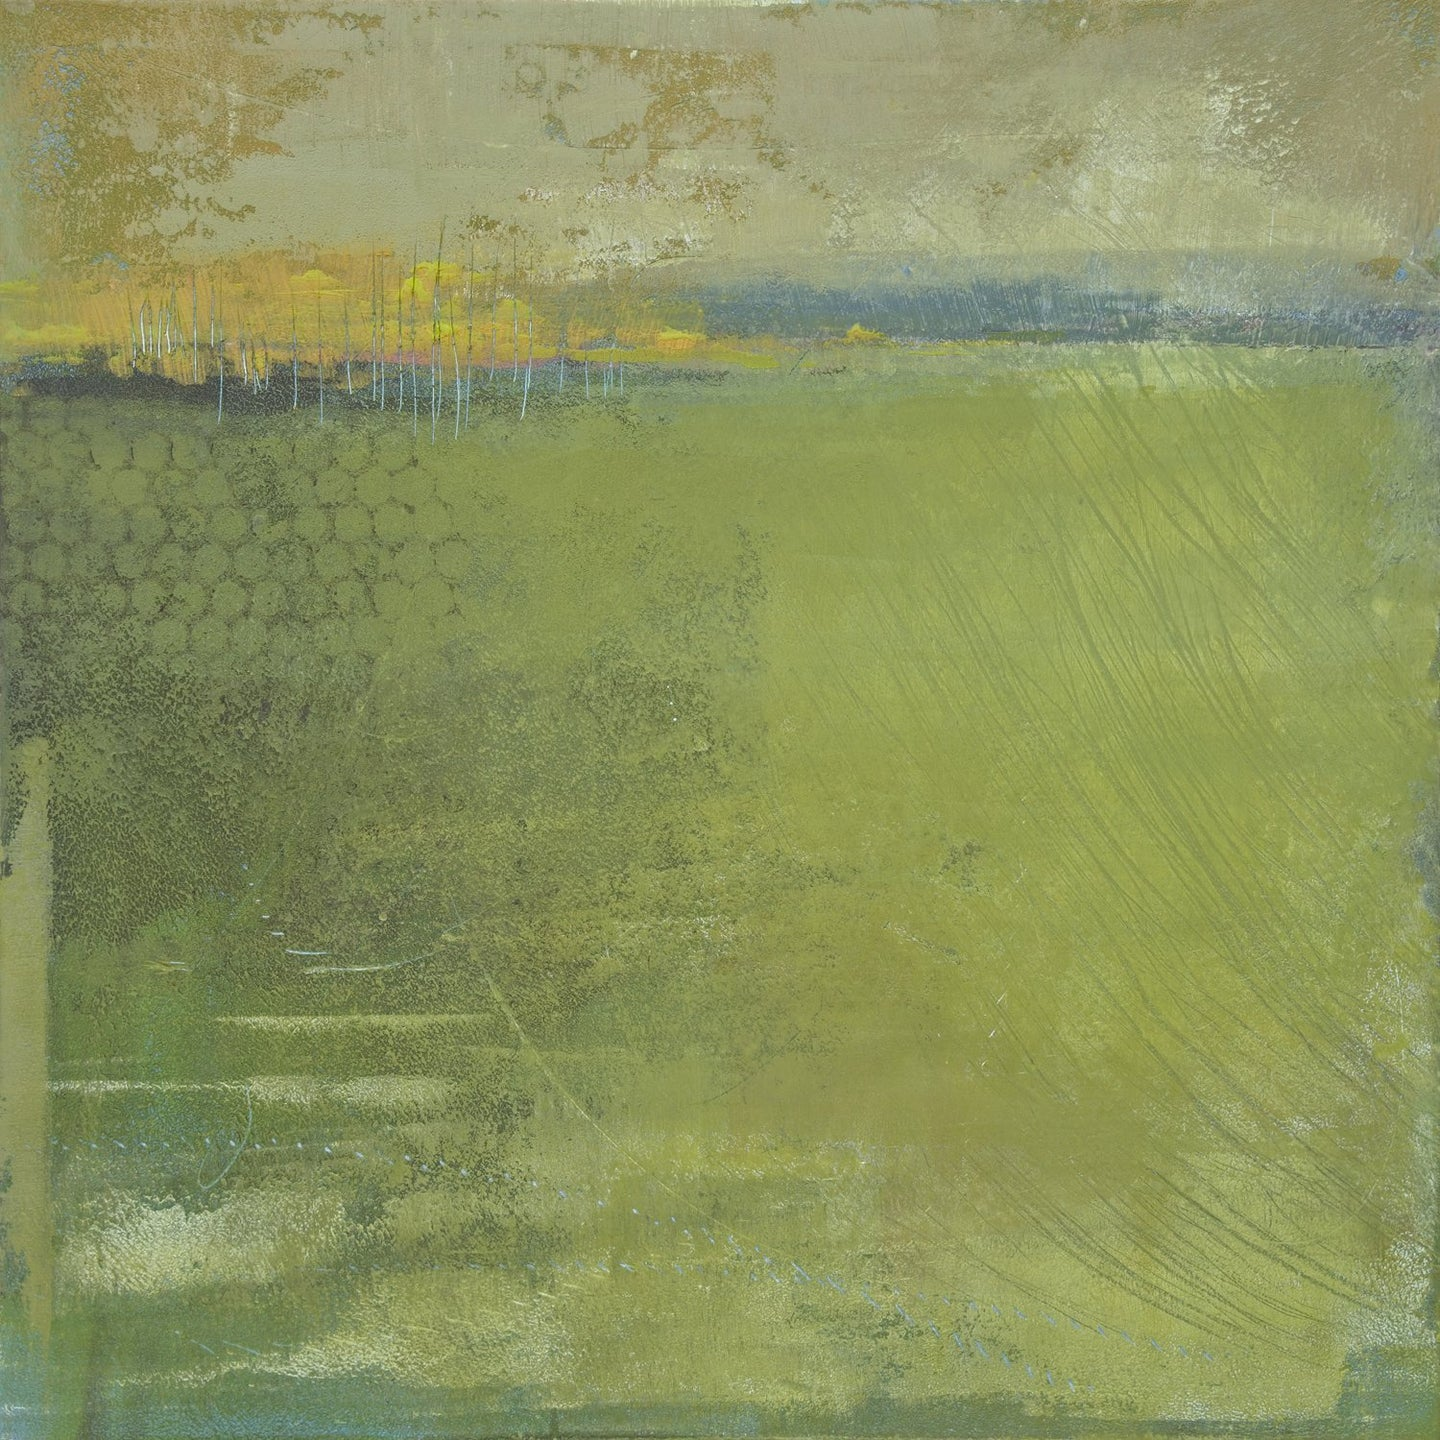 Yellow-green abstract landscape art